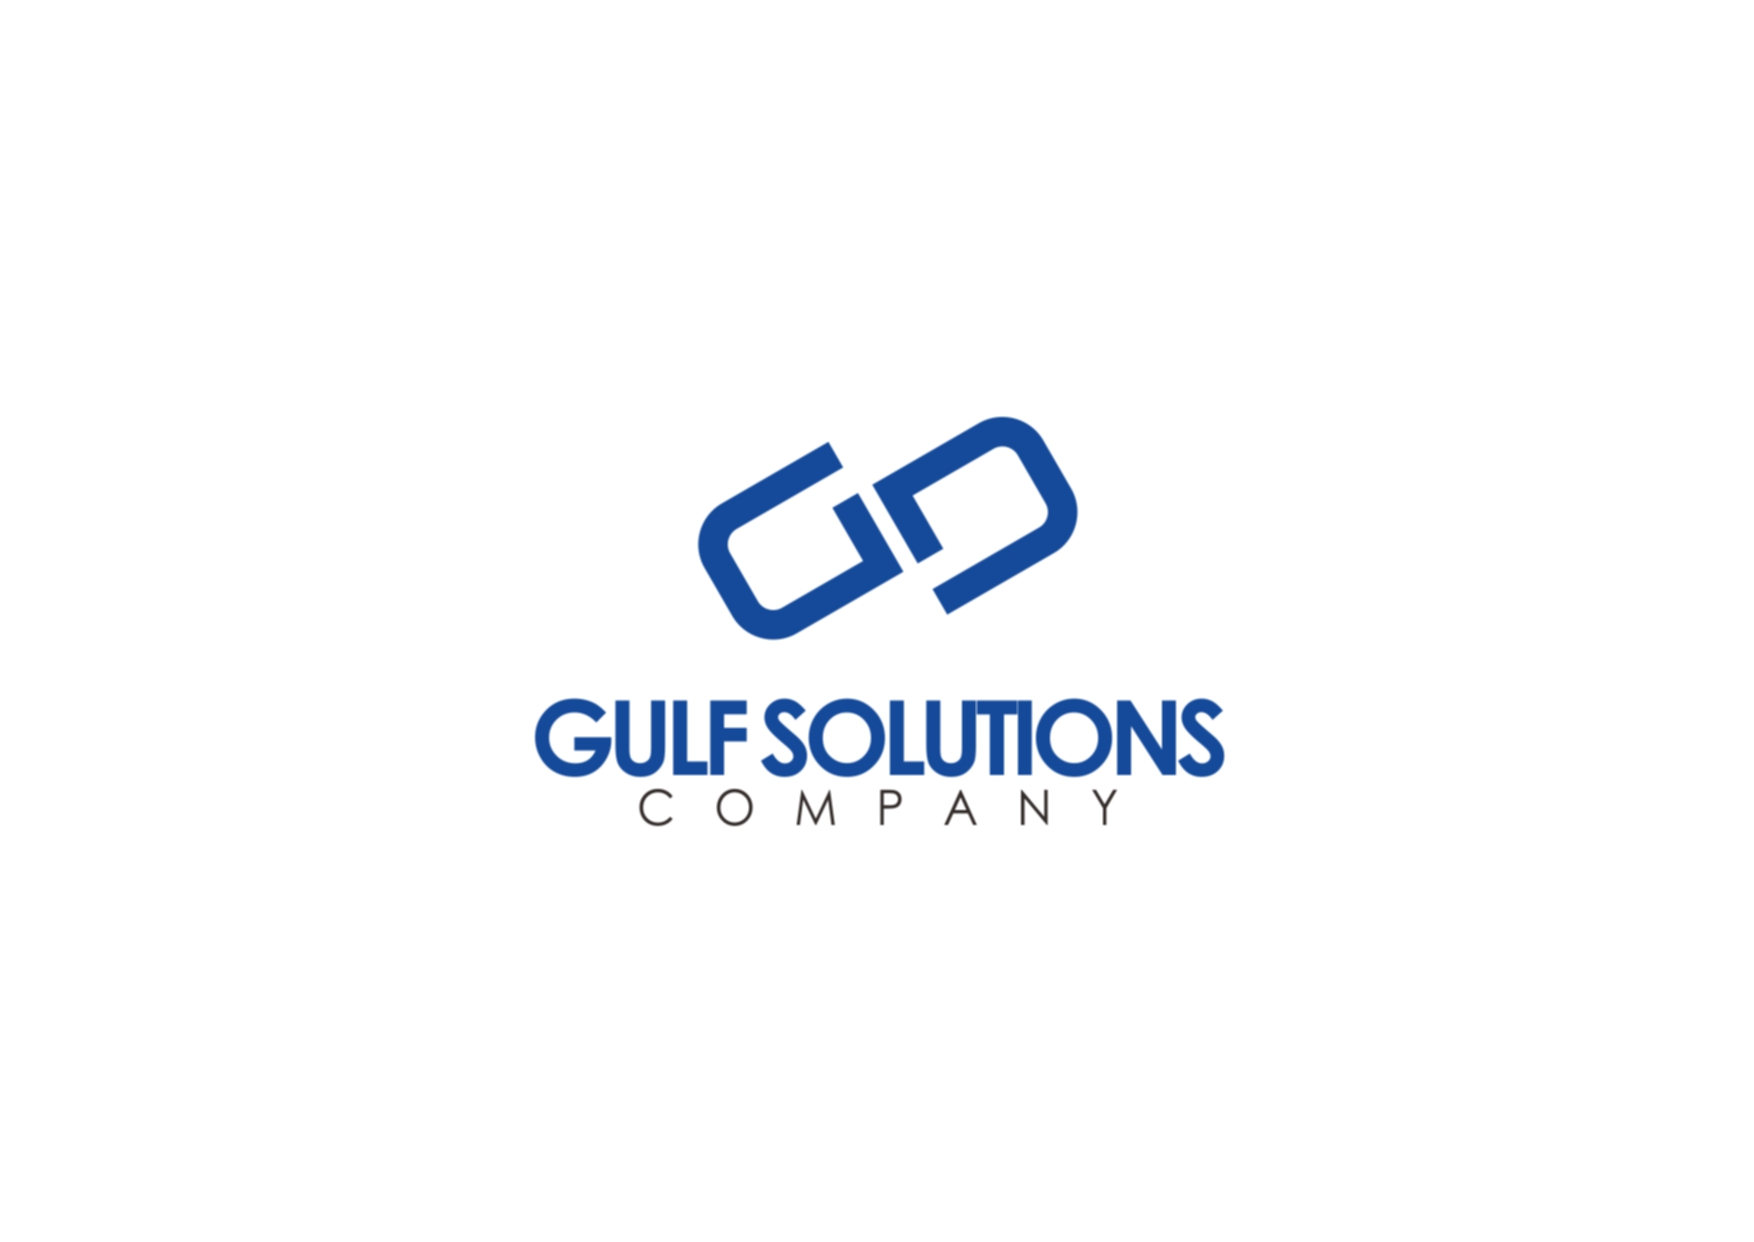 Logo Design by Private User - Entry No. 75 in the Logo Design Contest New Logo Design for Gulf solutions company.